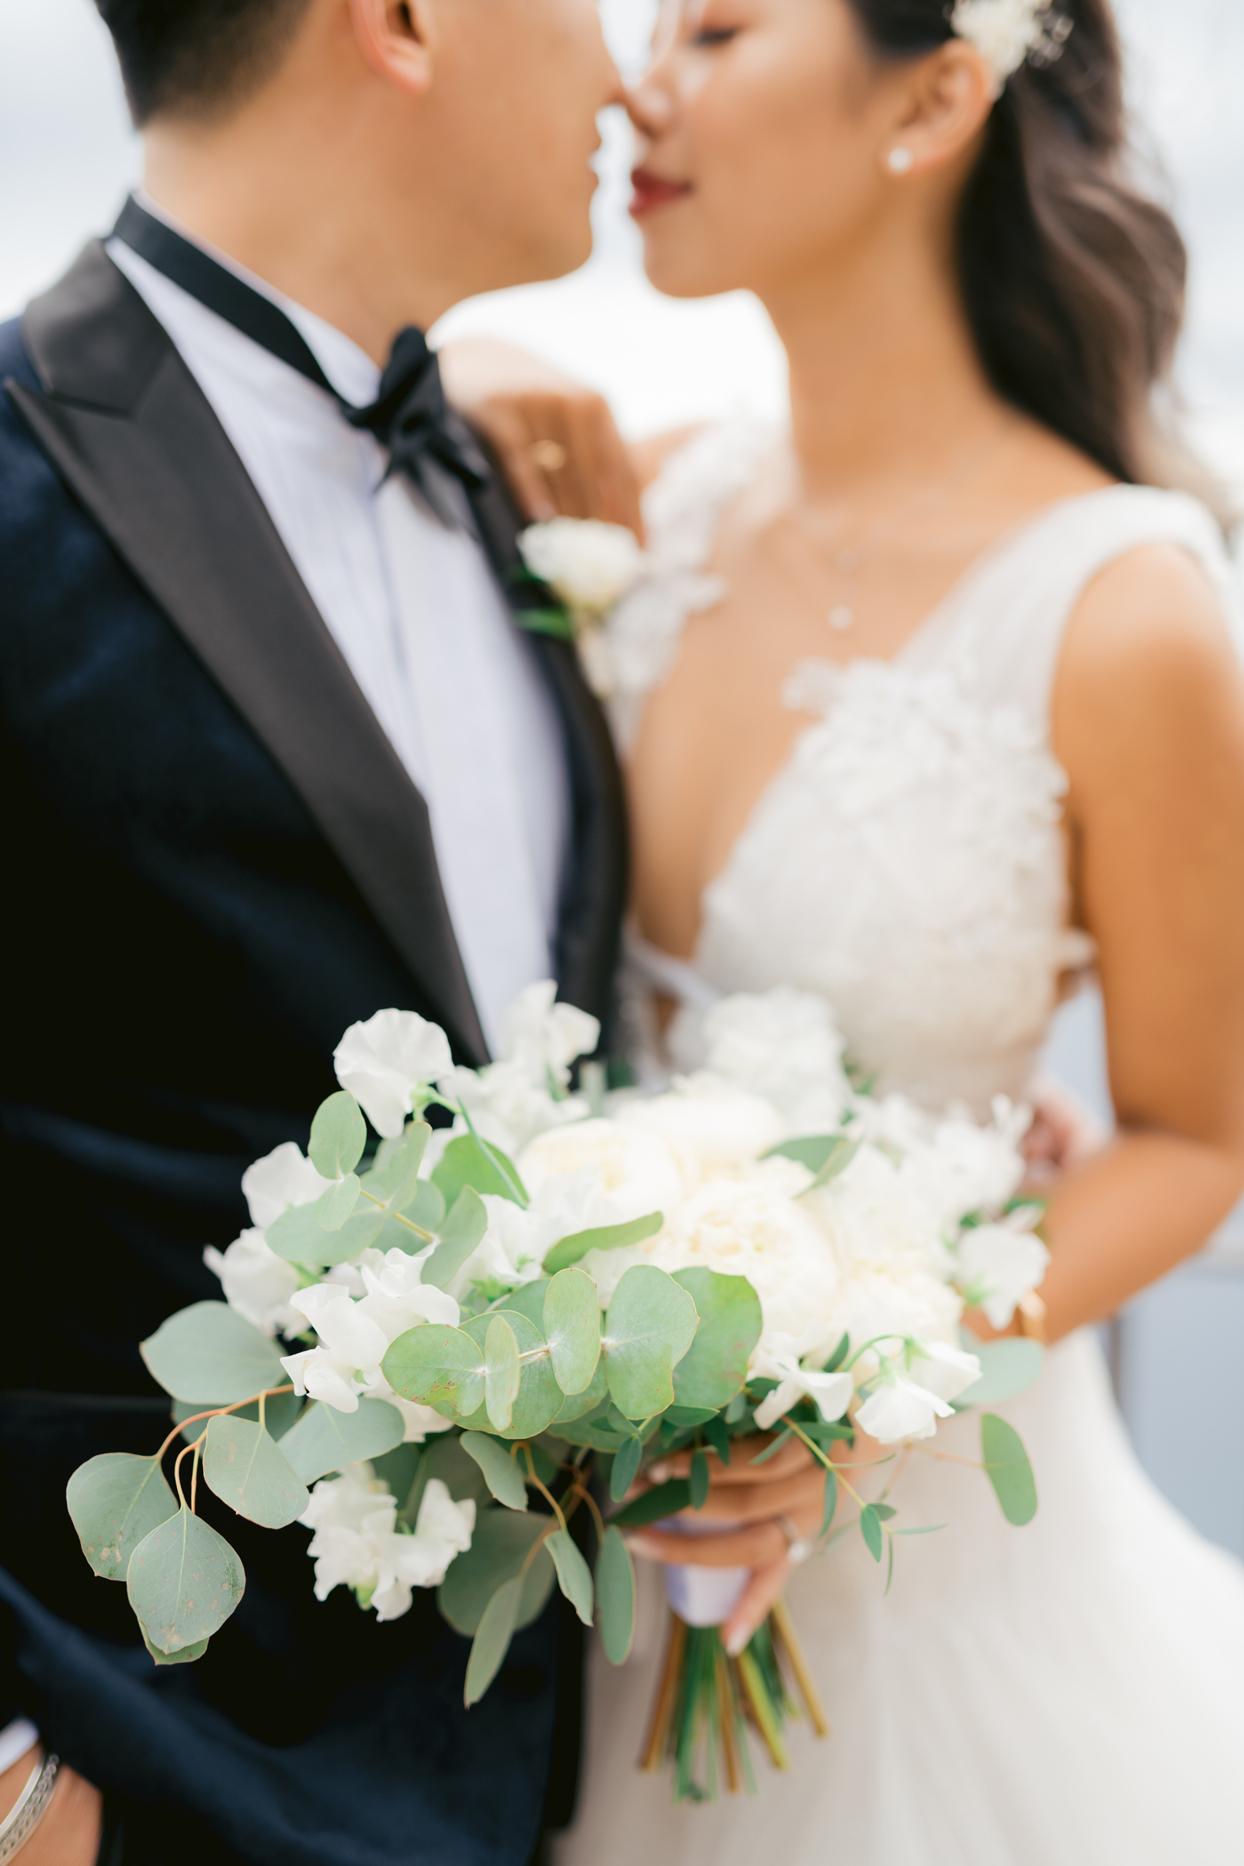 bride and groom embrace holding white floral bouquet